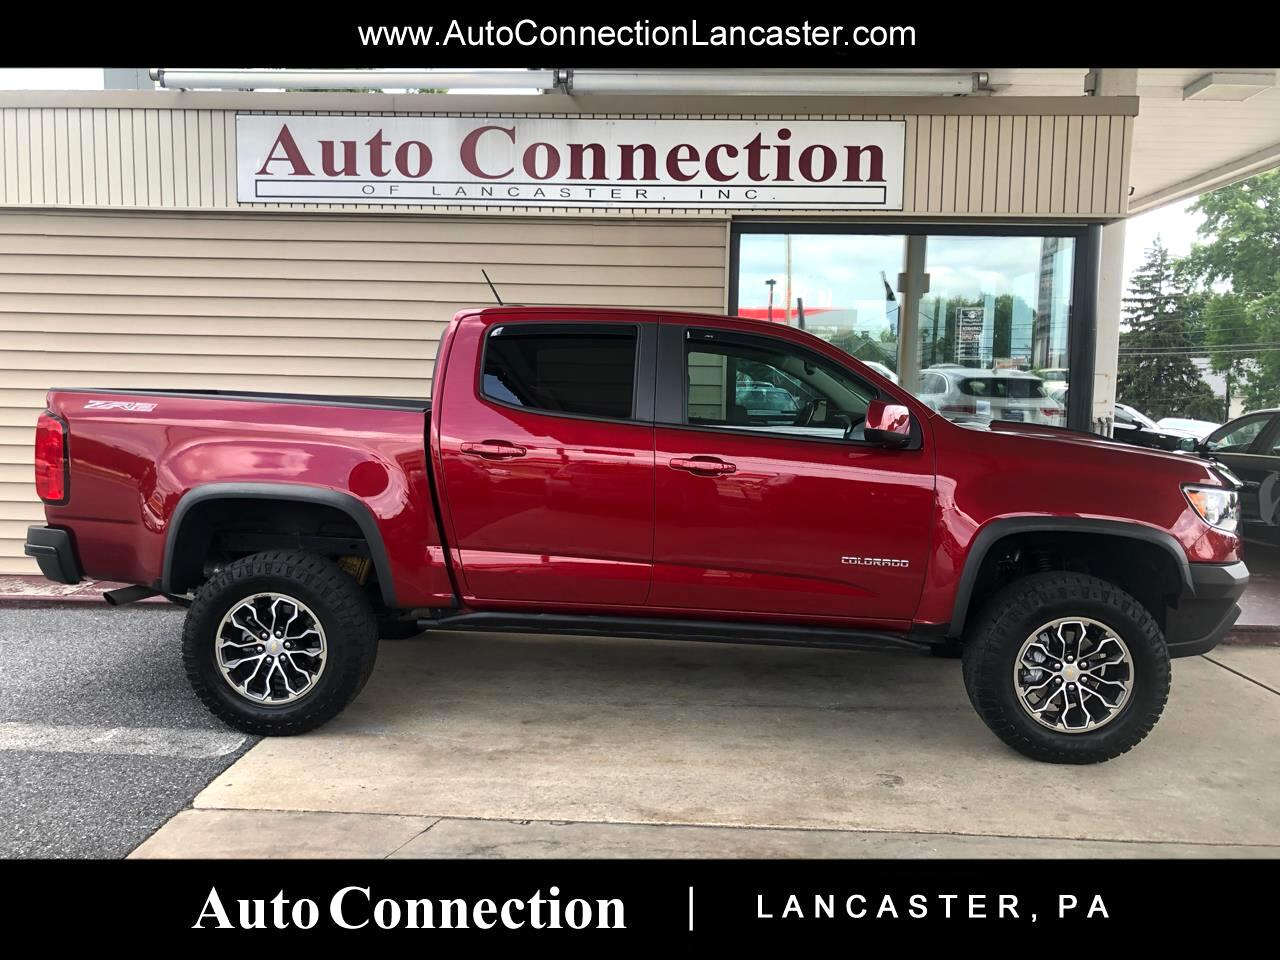 "2018 Chevrolet Colorado 4WD Crew Cab 128.3"" ZR2"